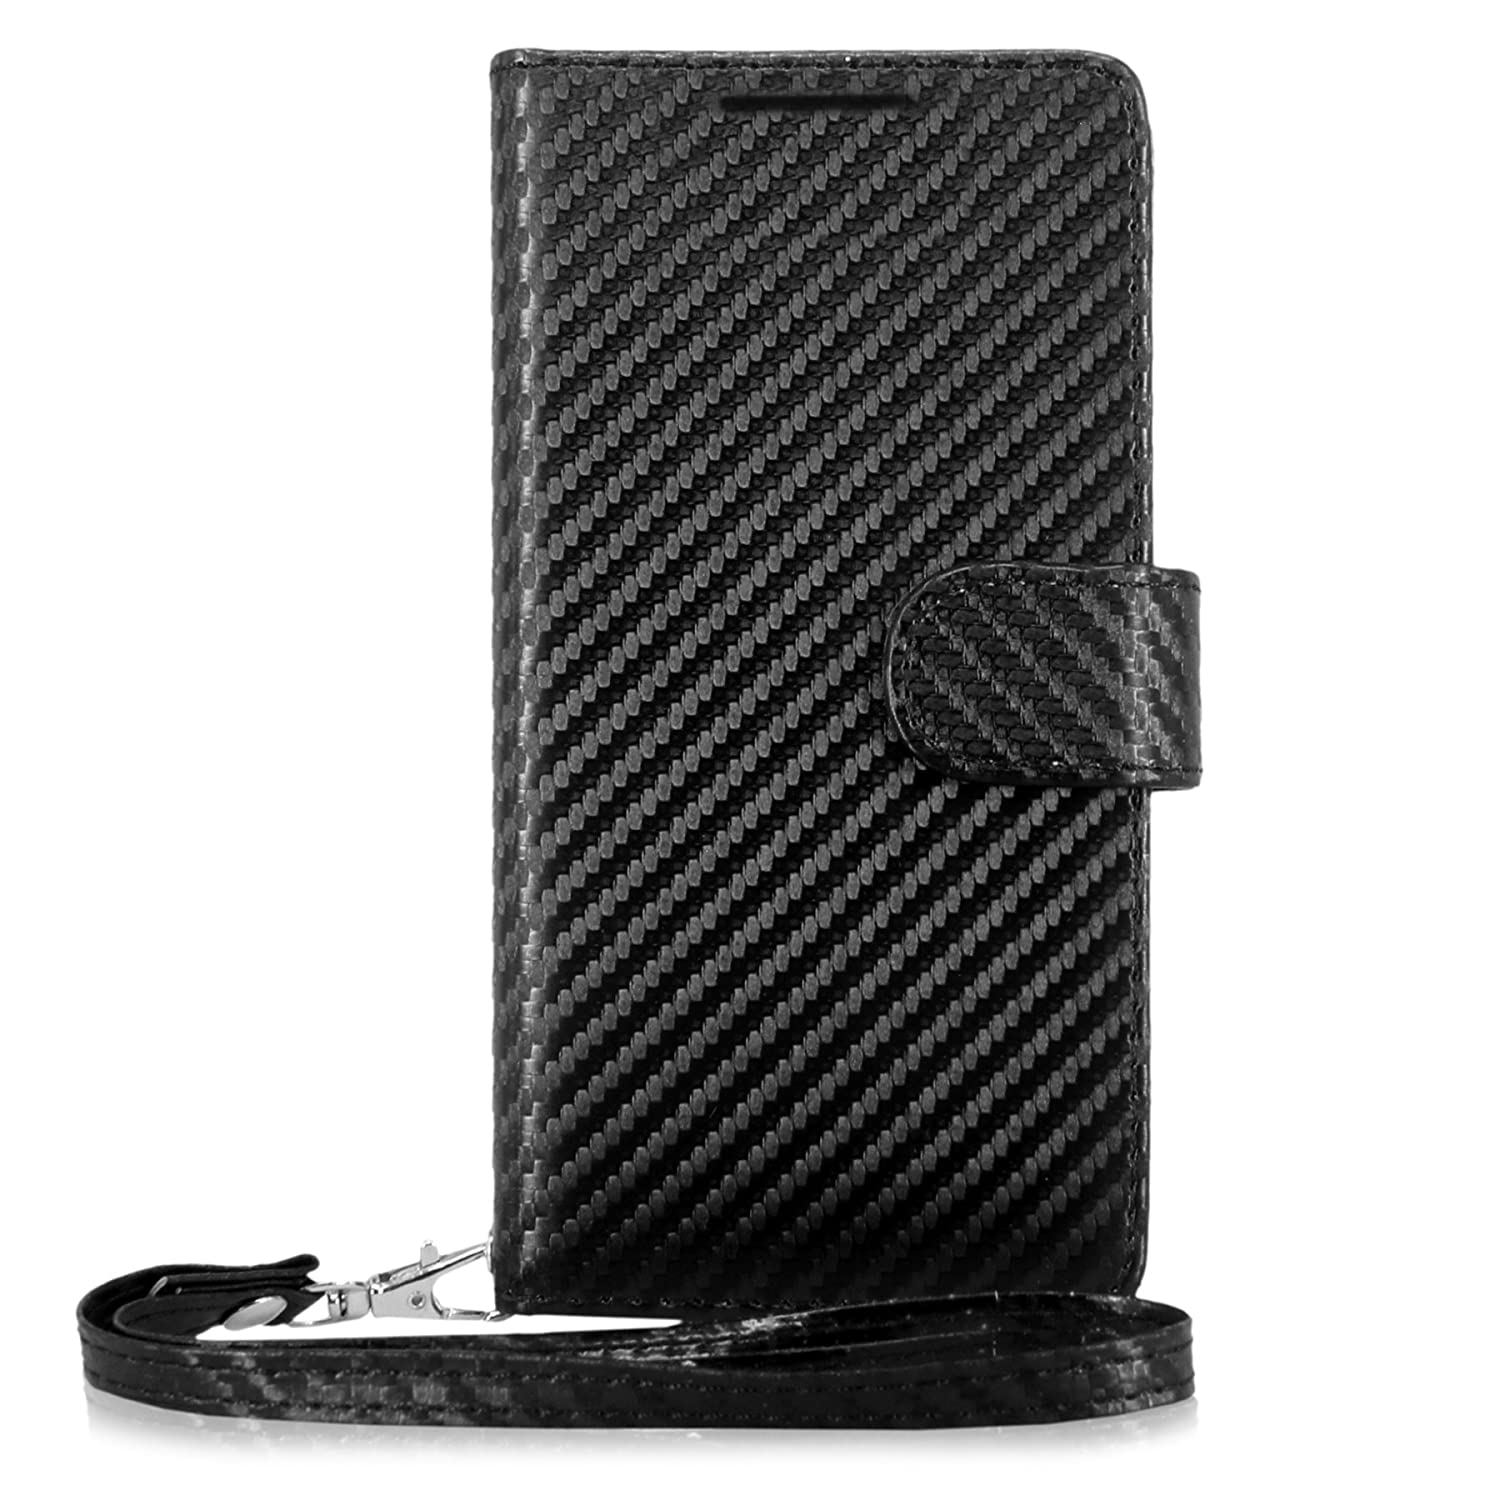 iPhone Cellularvilla Wallet Premium Leather Image 3